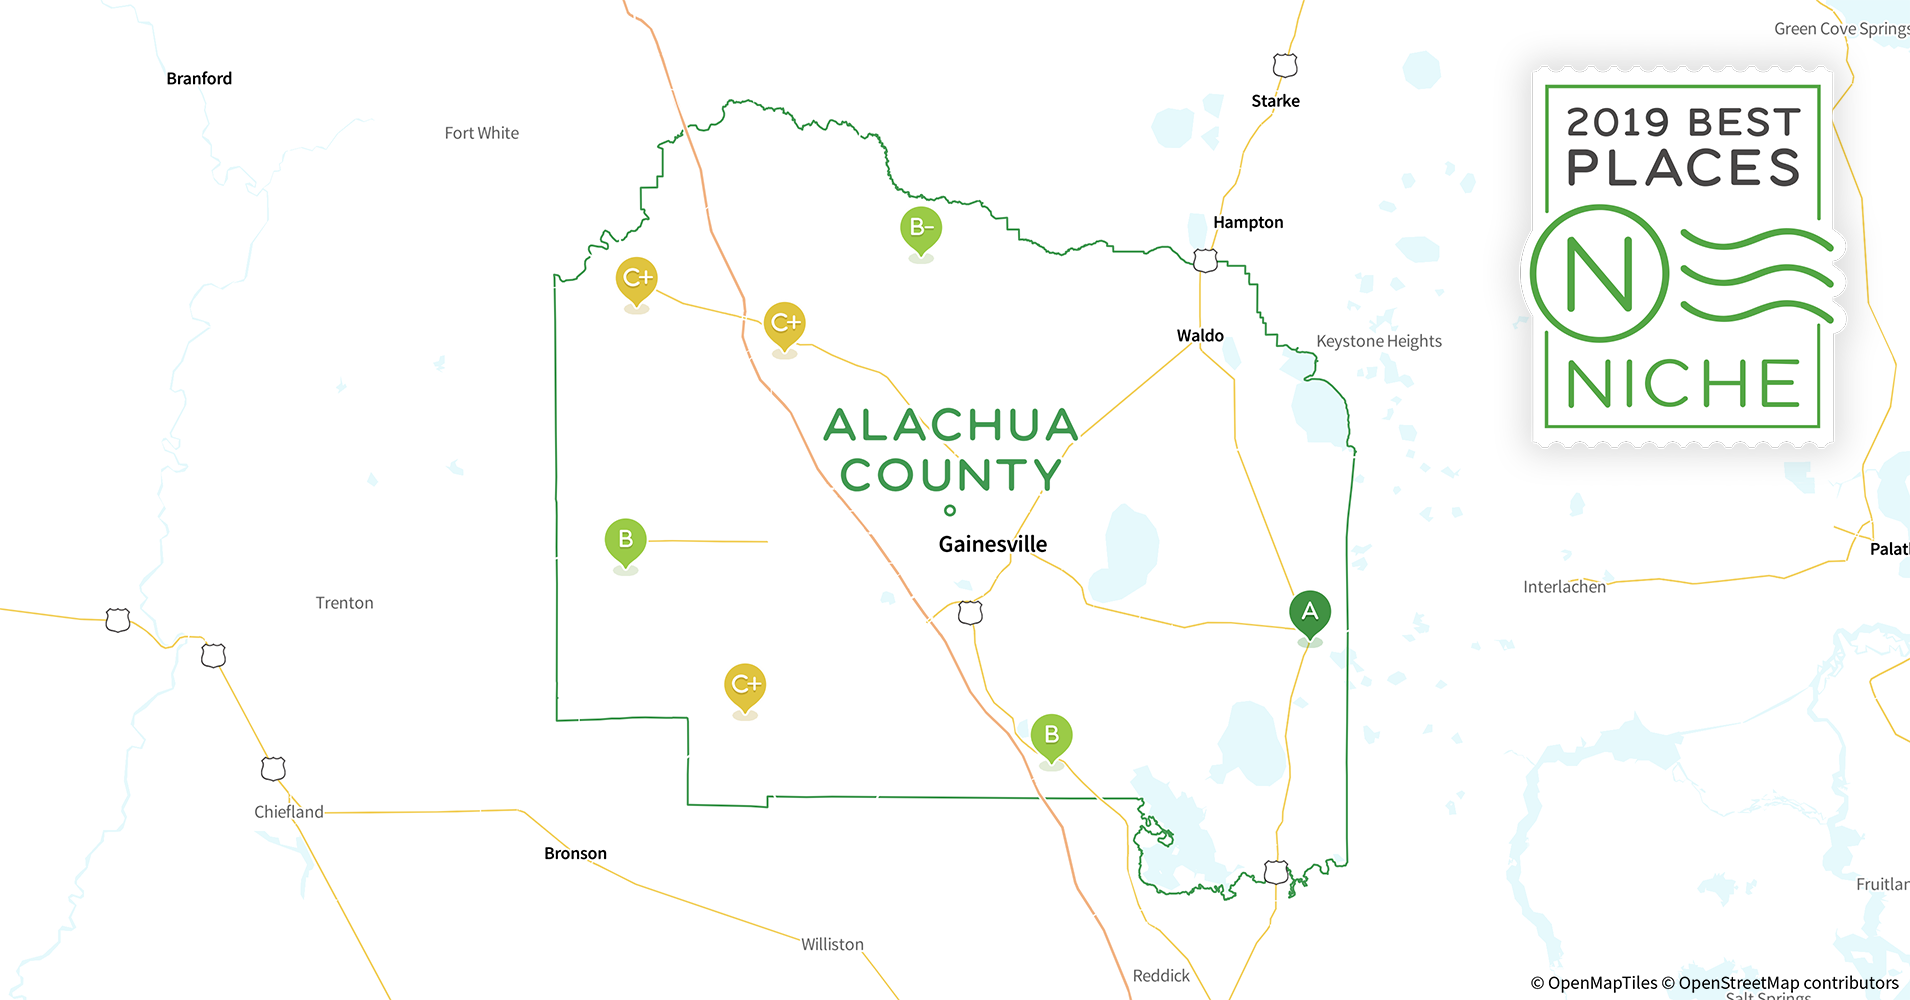 2019 Best Places to Live in Alachua County, FL - Niche